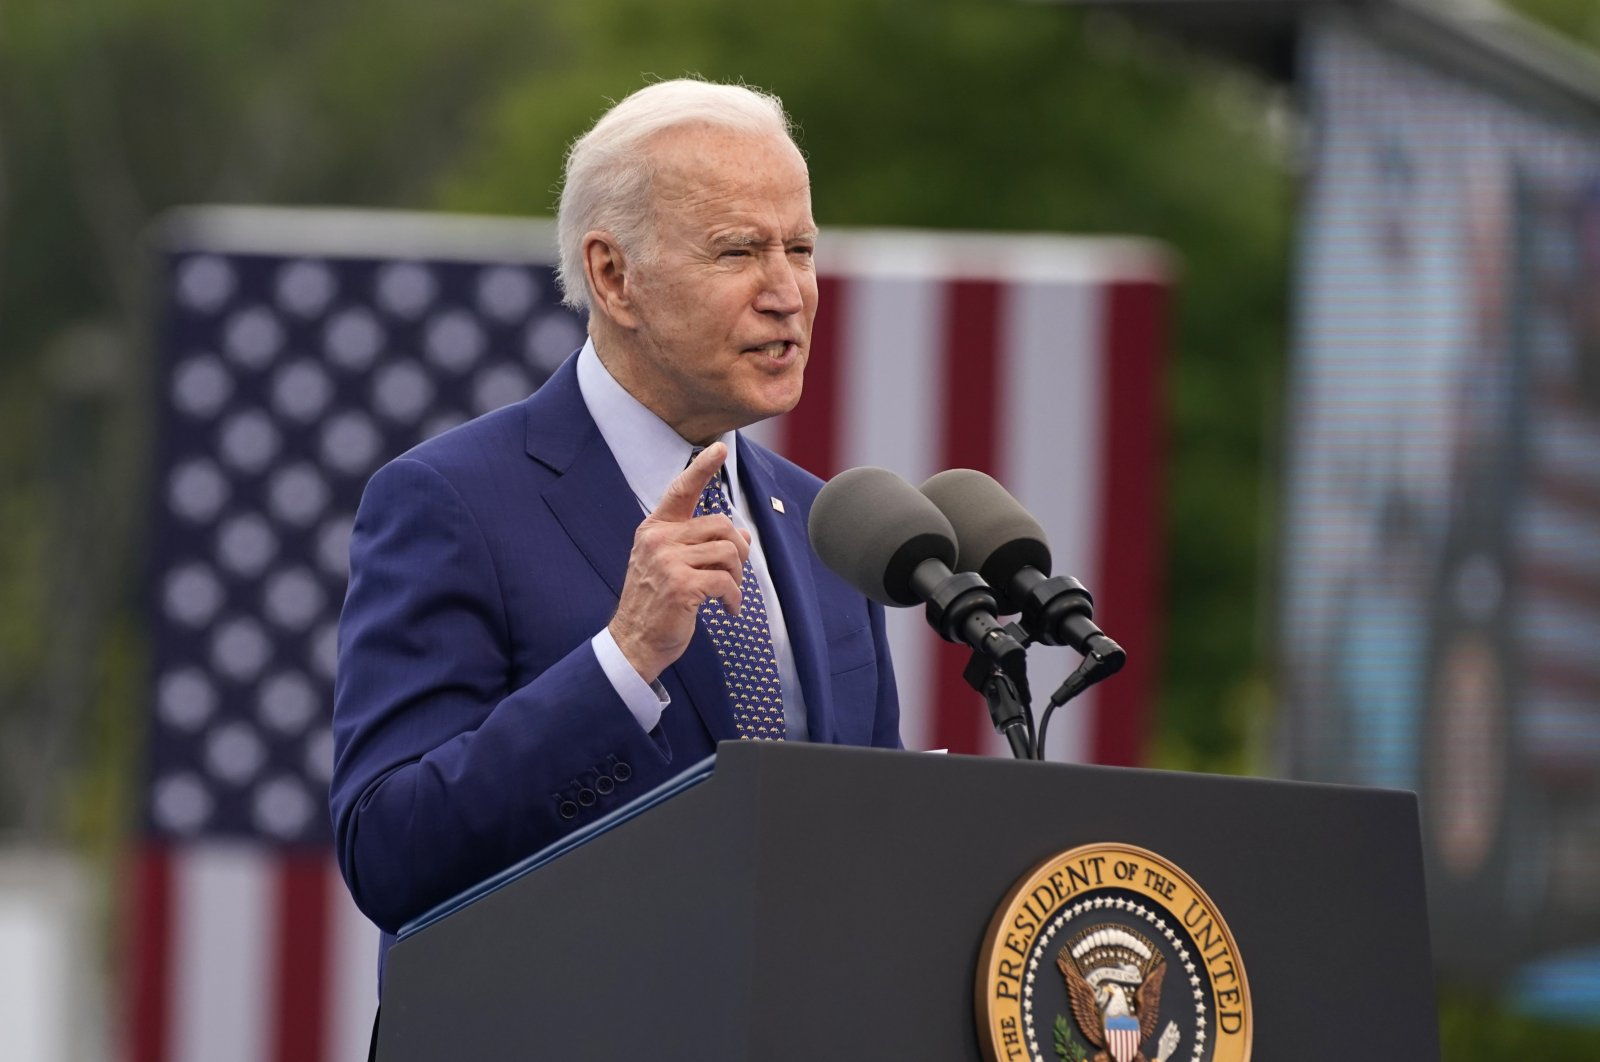 President Joe Biden speaks during a rally at Infinite Energy Center, to mark his 100th day in office, Thursday, April 29, 2021, in Duluth, Georgia, the U.S.  (AP File Photo)